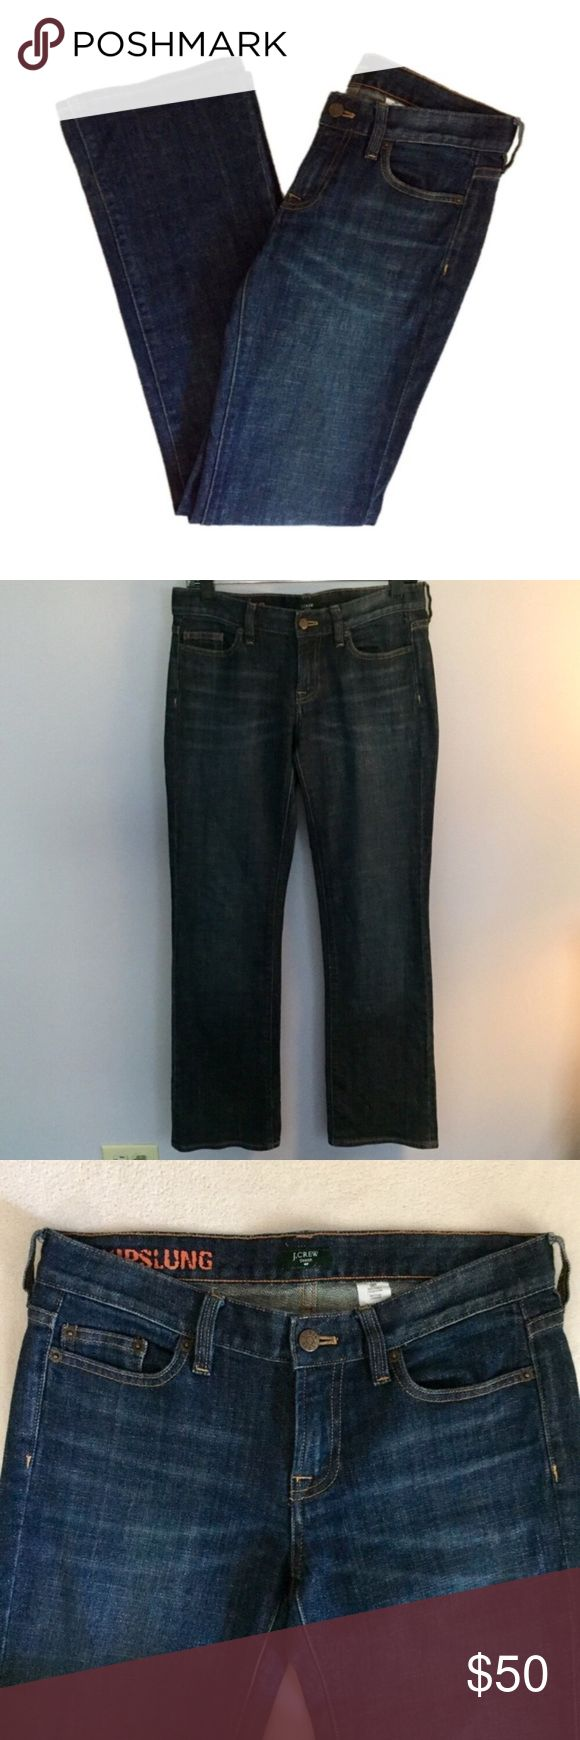 """J. Crew Hipslung Dark Blue Jeans J. Crew Hipslung Dark Blue Jeans. Boot cut. THERE IS ONE SCRATCH ON THE BACK NEAR THE POCKET. SEE PICTURE 5. Size 28 Regular. Equivalent to a size 6. Waist 31"""" Hips 36.5"""" Inseam 31.25"""" Excellent Condition! Let me know if you have any questions! ✅ I LOVE OFFERS ✅ 💜INSTAGRAM: @ocaputostyle J. Crew Jeans Boot Cut"""